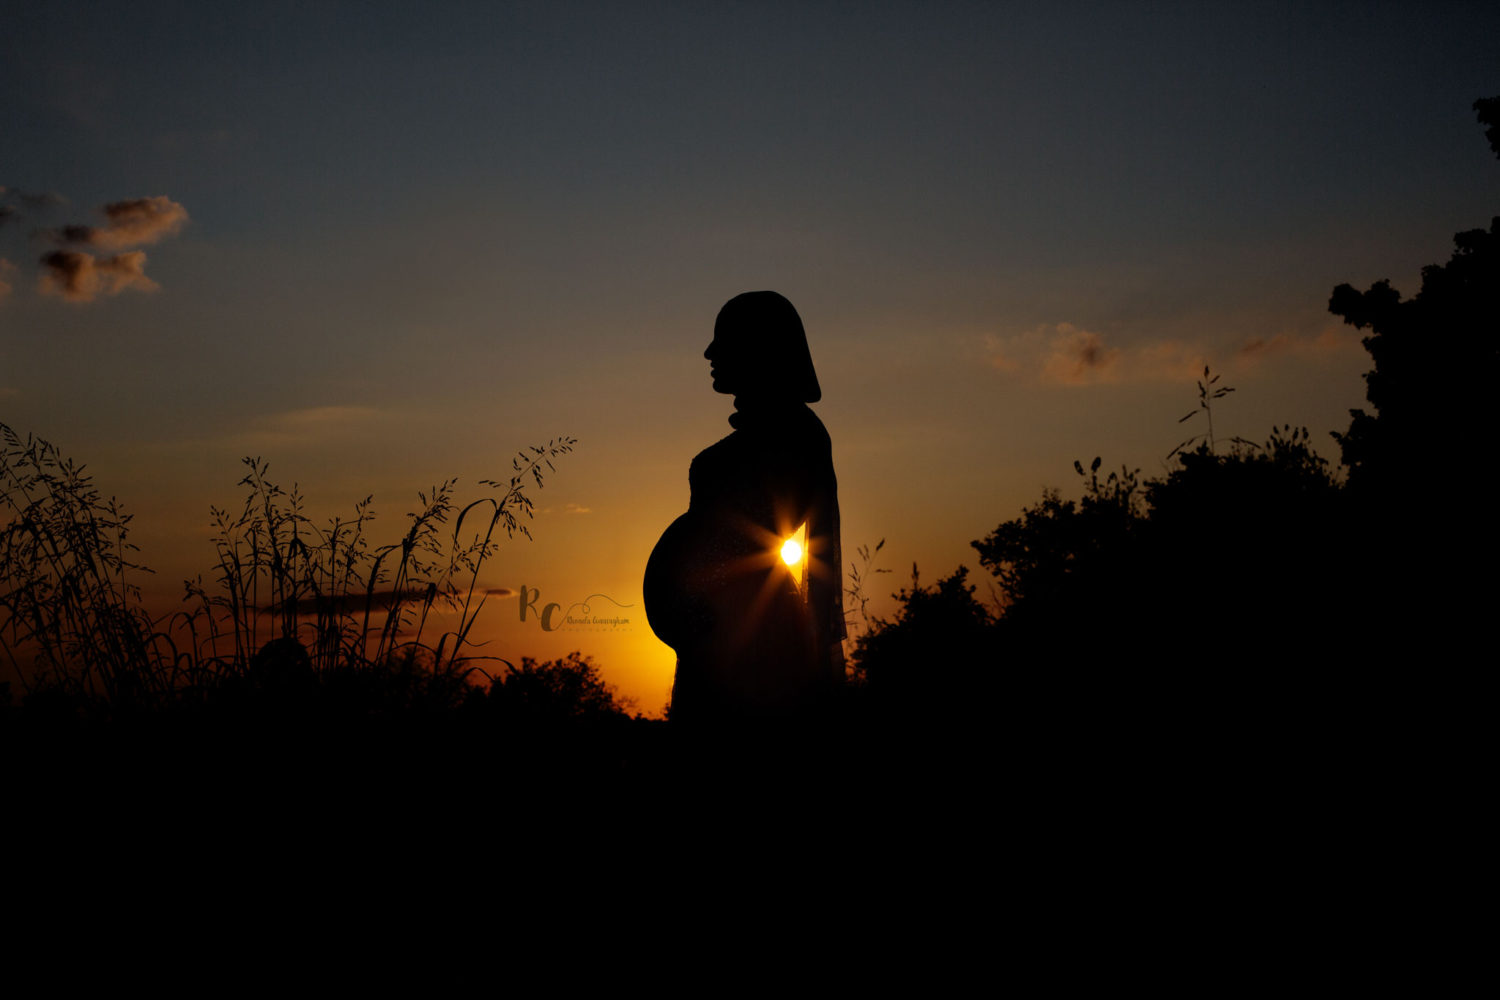 Silhouette Image of pregnant mother at sunset captured by Lexington, KY Maternity Photographer, Rhonda Cunningham Photography.